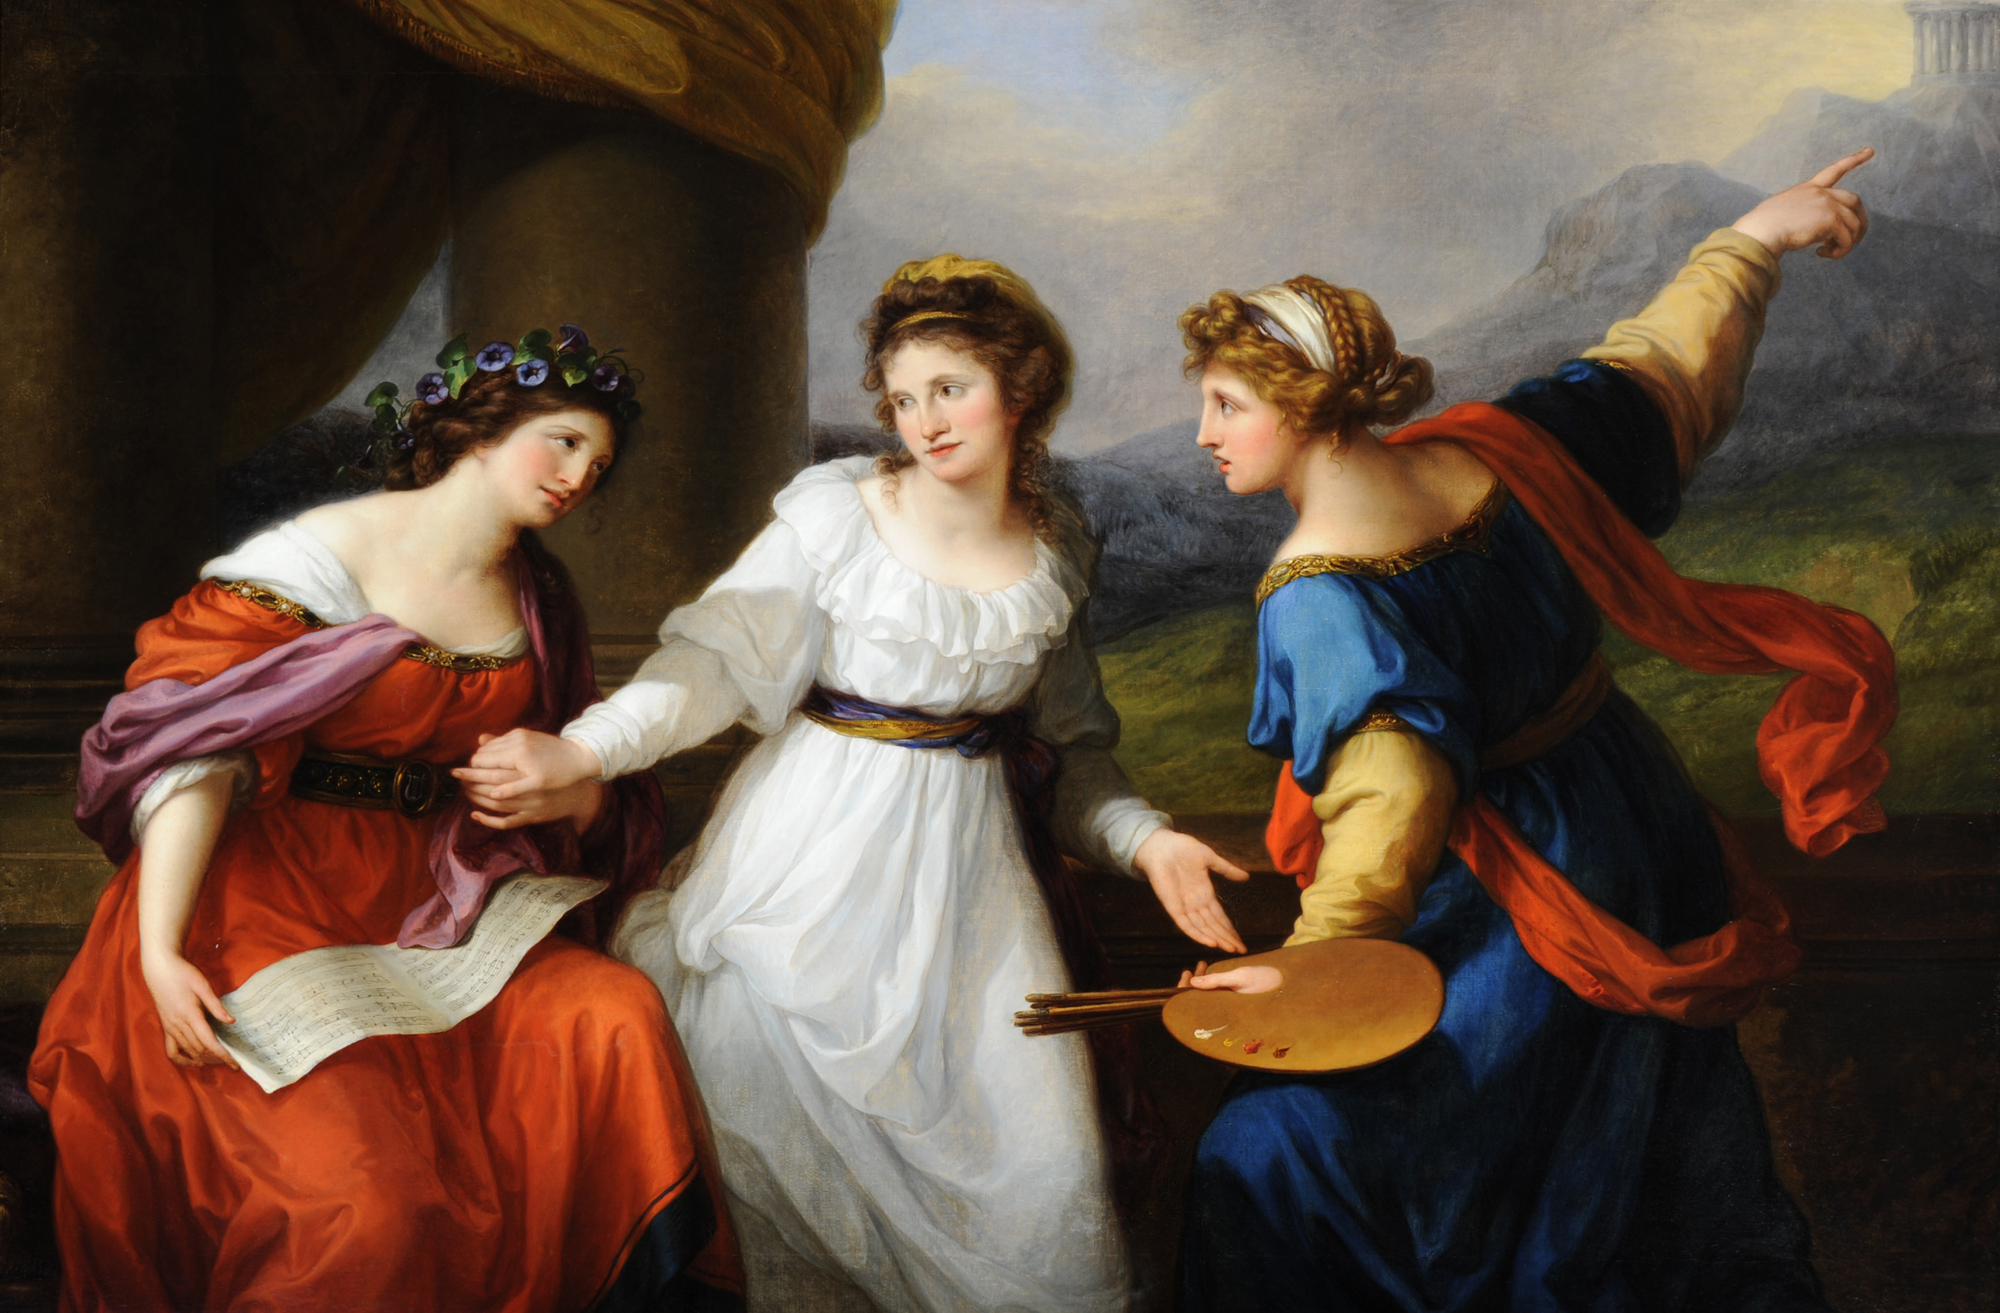 Angelika Kauffmann, Selbstbildnis am Scheideweg zwischen Musik und Malerei, 1794. National Trust Collections (Nostell Priory, The St. Oswald Collection). Purchased by private treaty with the help of a grant from the Heritage Lottery Fund. © National Trust Collections, Foto: National Trust Images